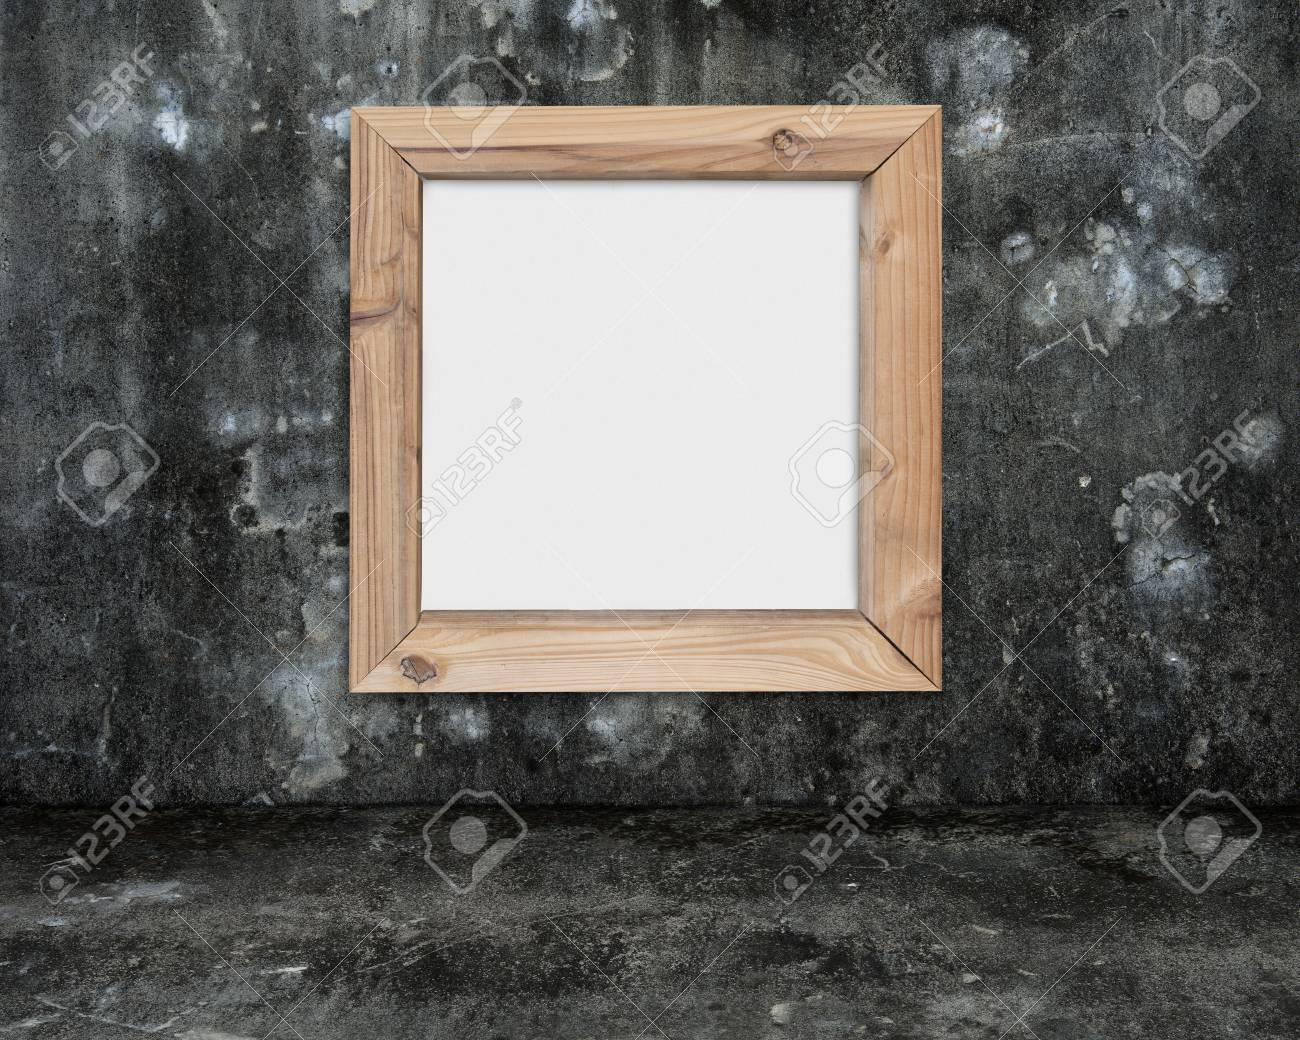 Blank Whiteboard With Wooden Frame On Dark Mottled Concrete Wall ...